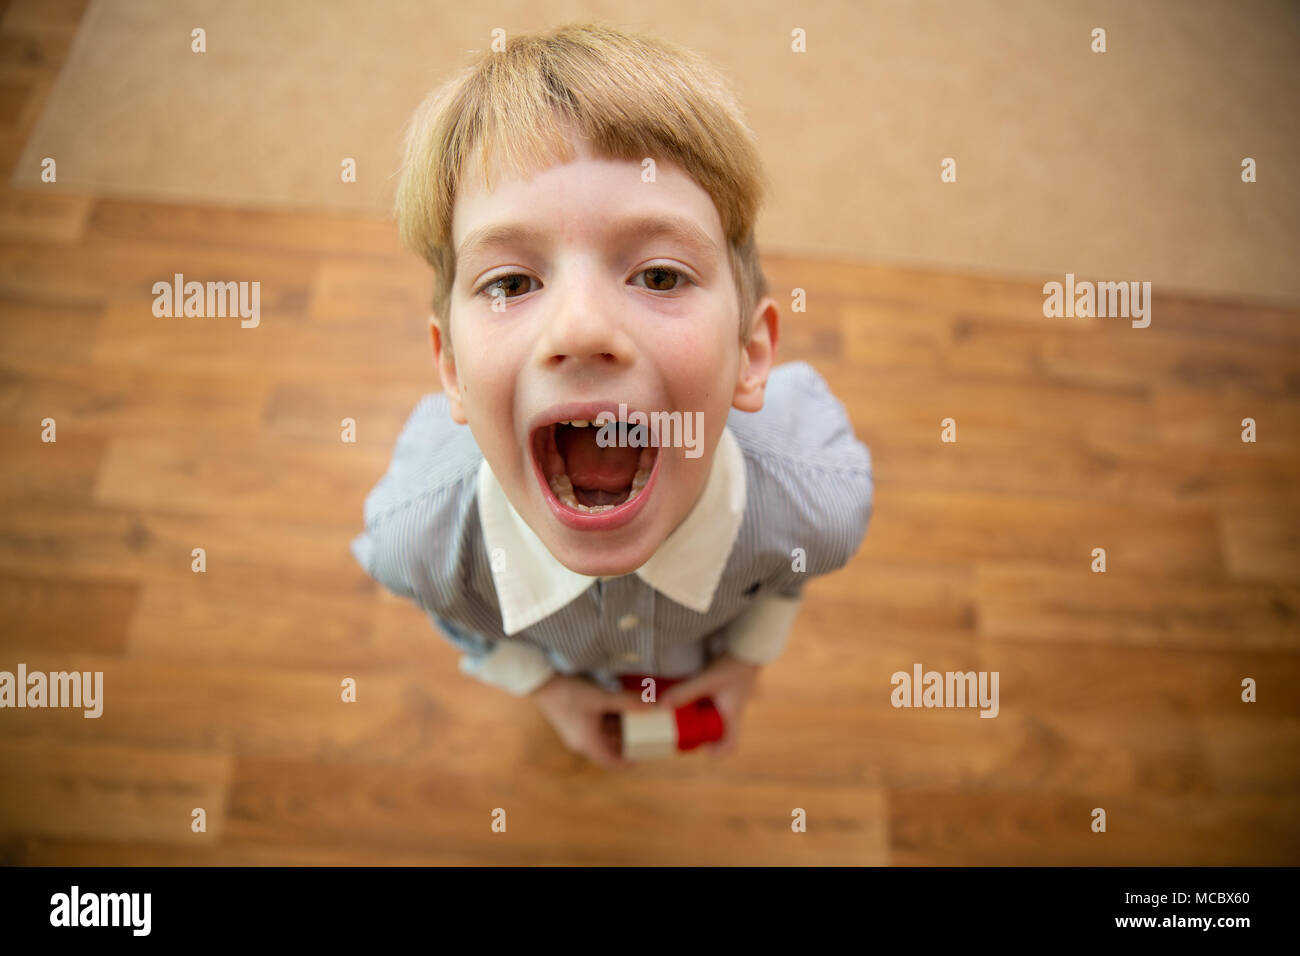 Little boy screaming. boy with open mouth. view from above Stock Photo